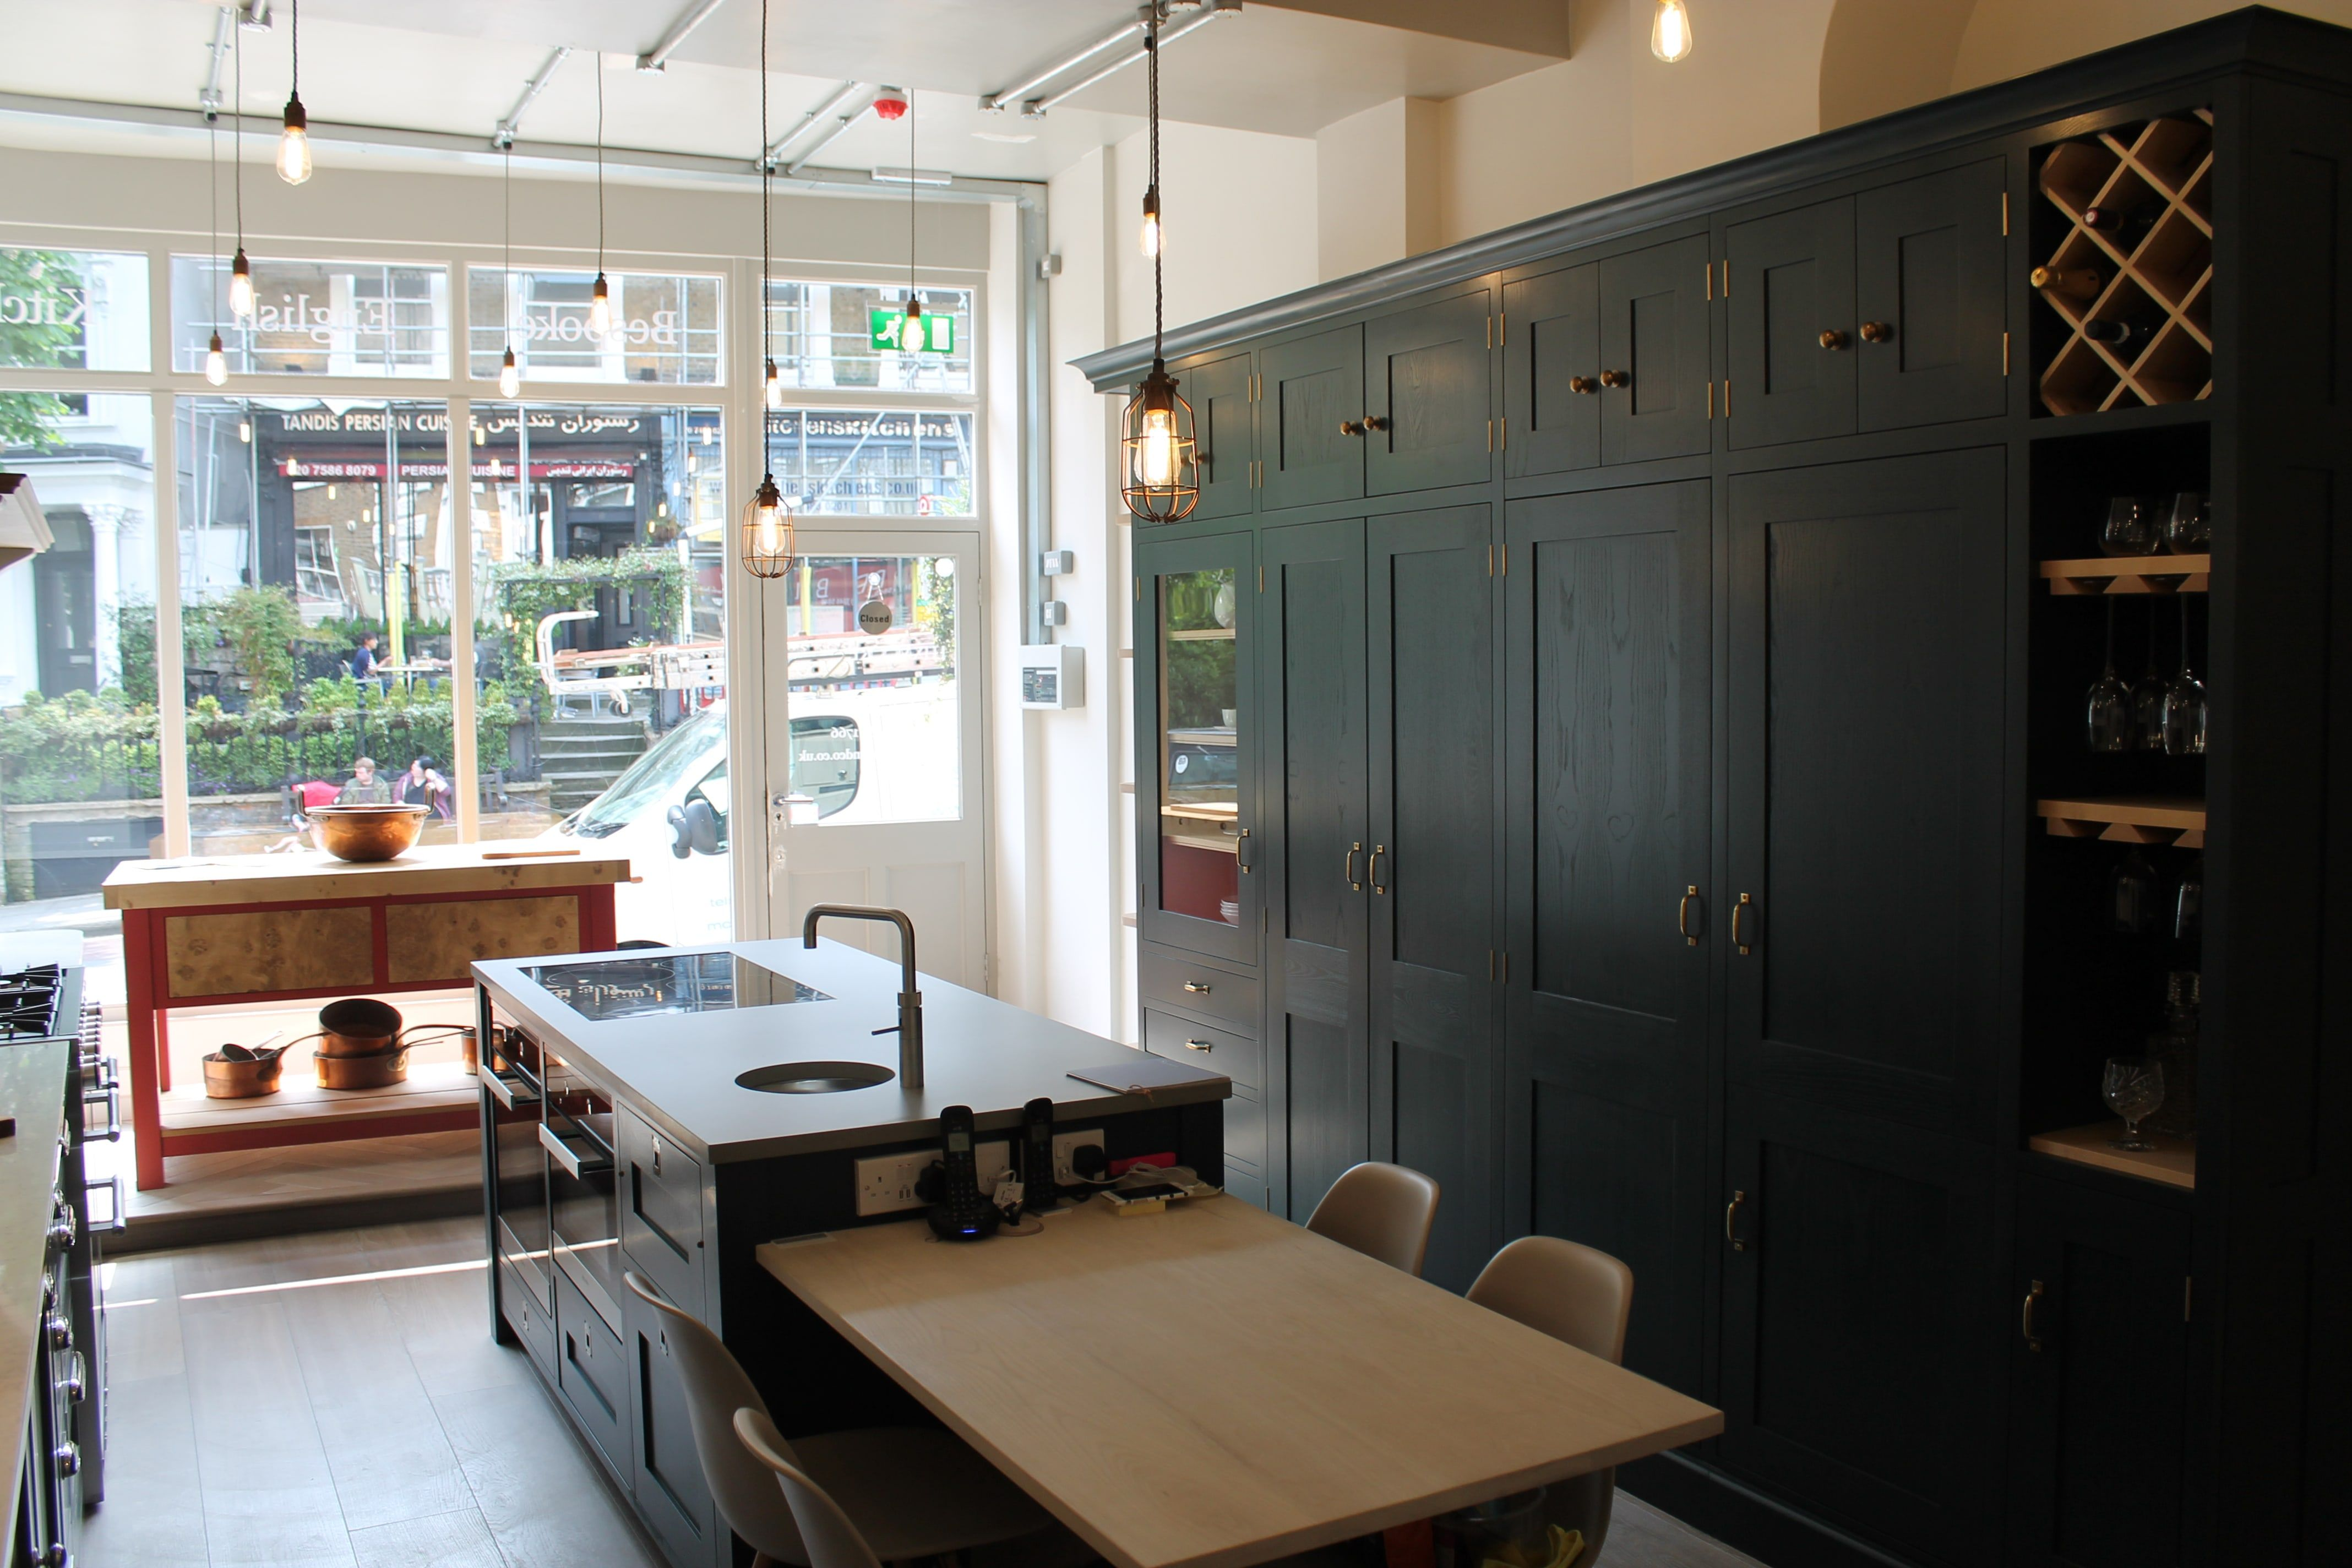 Our London Showroom Is OpenWe've just opened the doors of